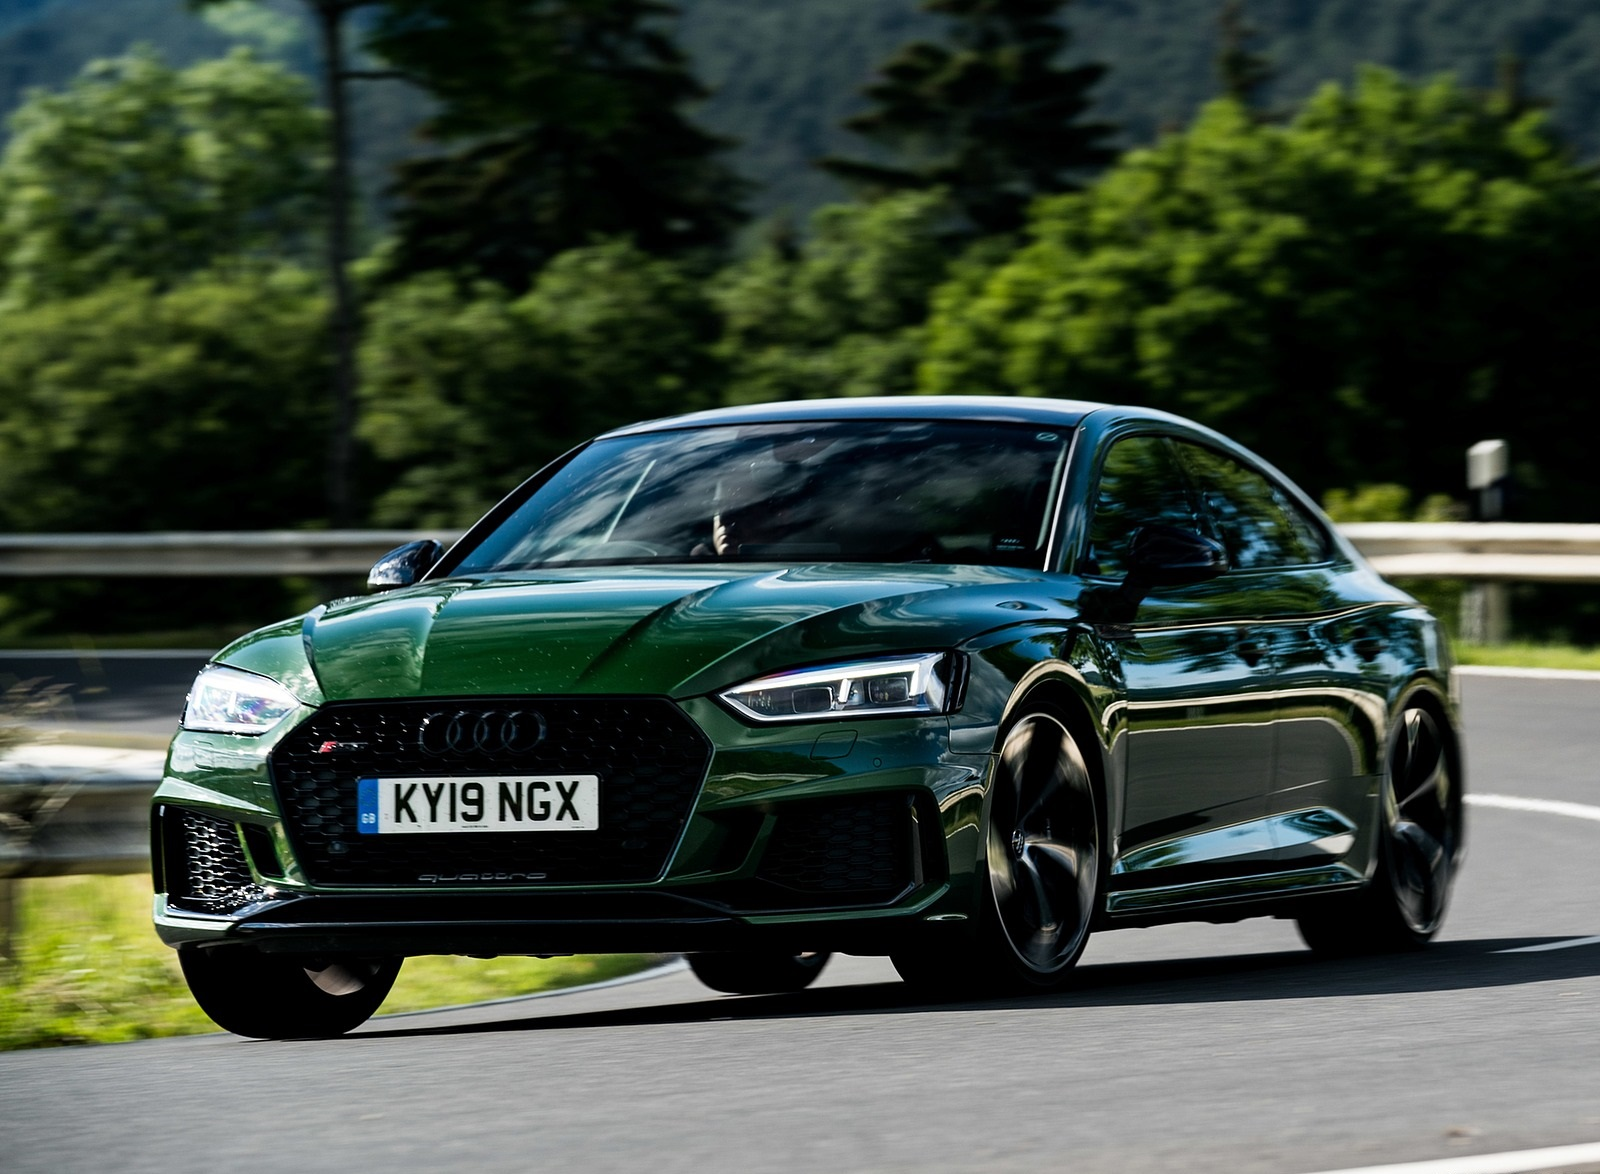 2019 Audi RS 5 Sportback (UK-Spec) Front Three-Quarter Wallpapers (4)